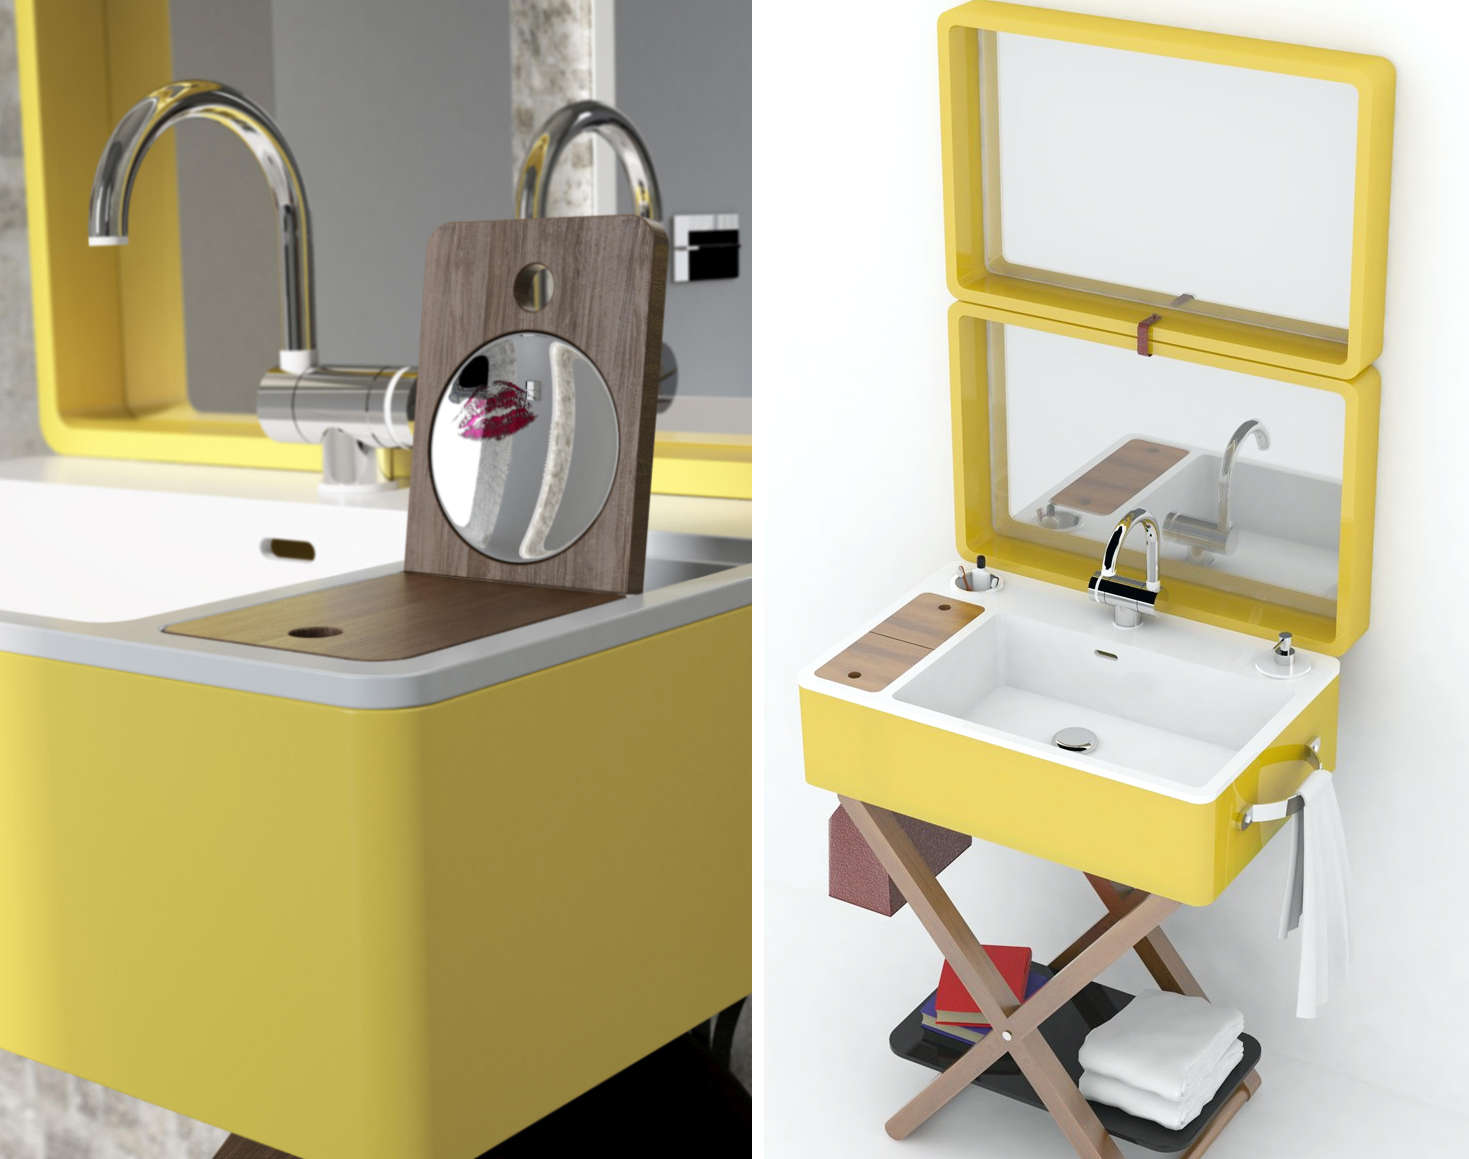 A portable vanity designed to resemble a suitcase